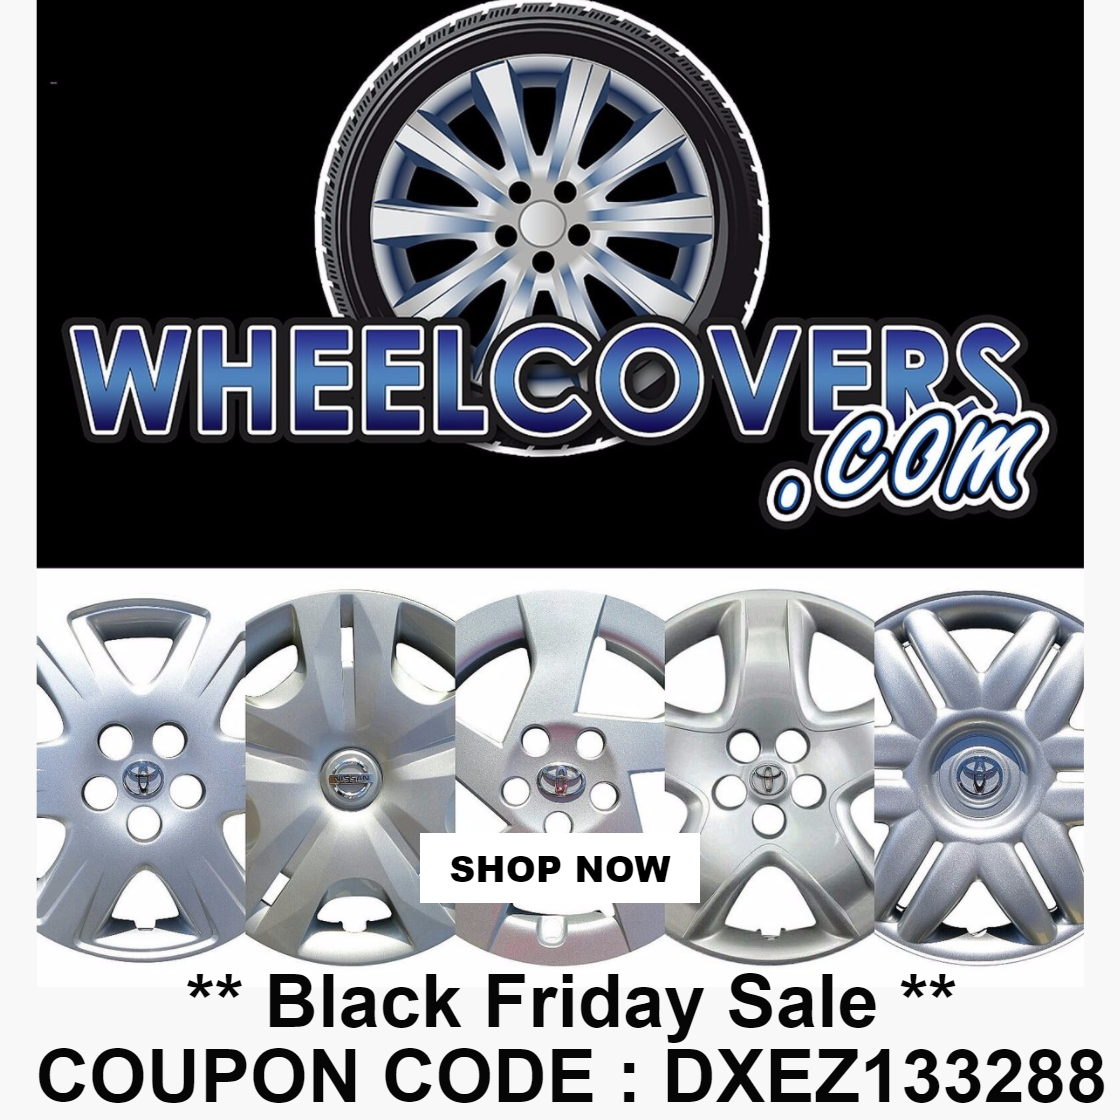 Black Friday Sale At Wheelcovers Com Blackfridaydeals Blackfriday Blackfridaysale Hub Caps Wheel Cover Volkswagen Logo